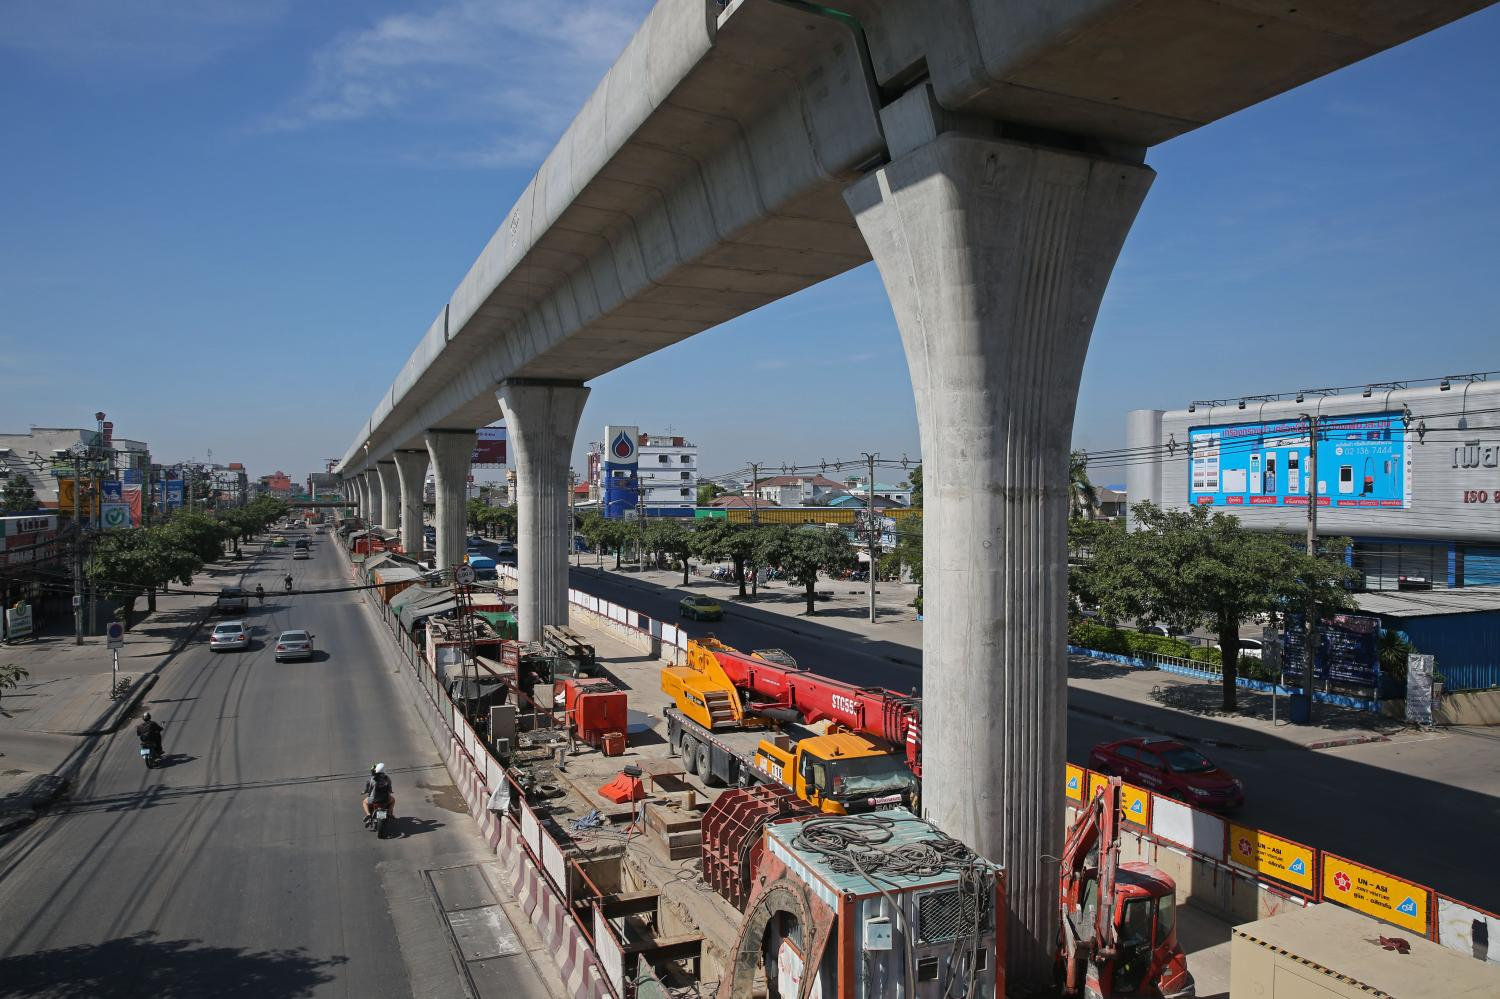 A construction site of the Orange Line on Ramkhamhaeng Road near Seri Thai Road and Eastern Ring Road and the Lam Sali intersection. The route is expected to open in 2023. Varuth Hirunyatheb